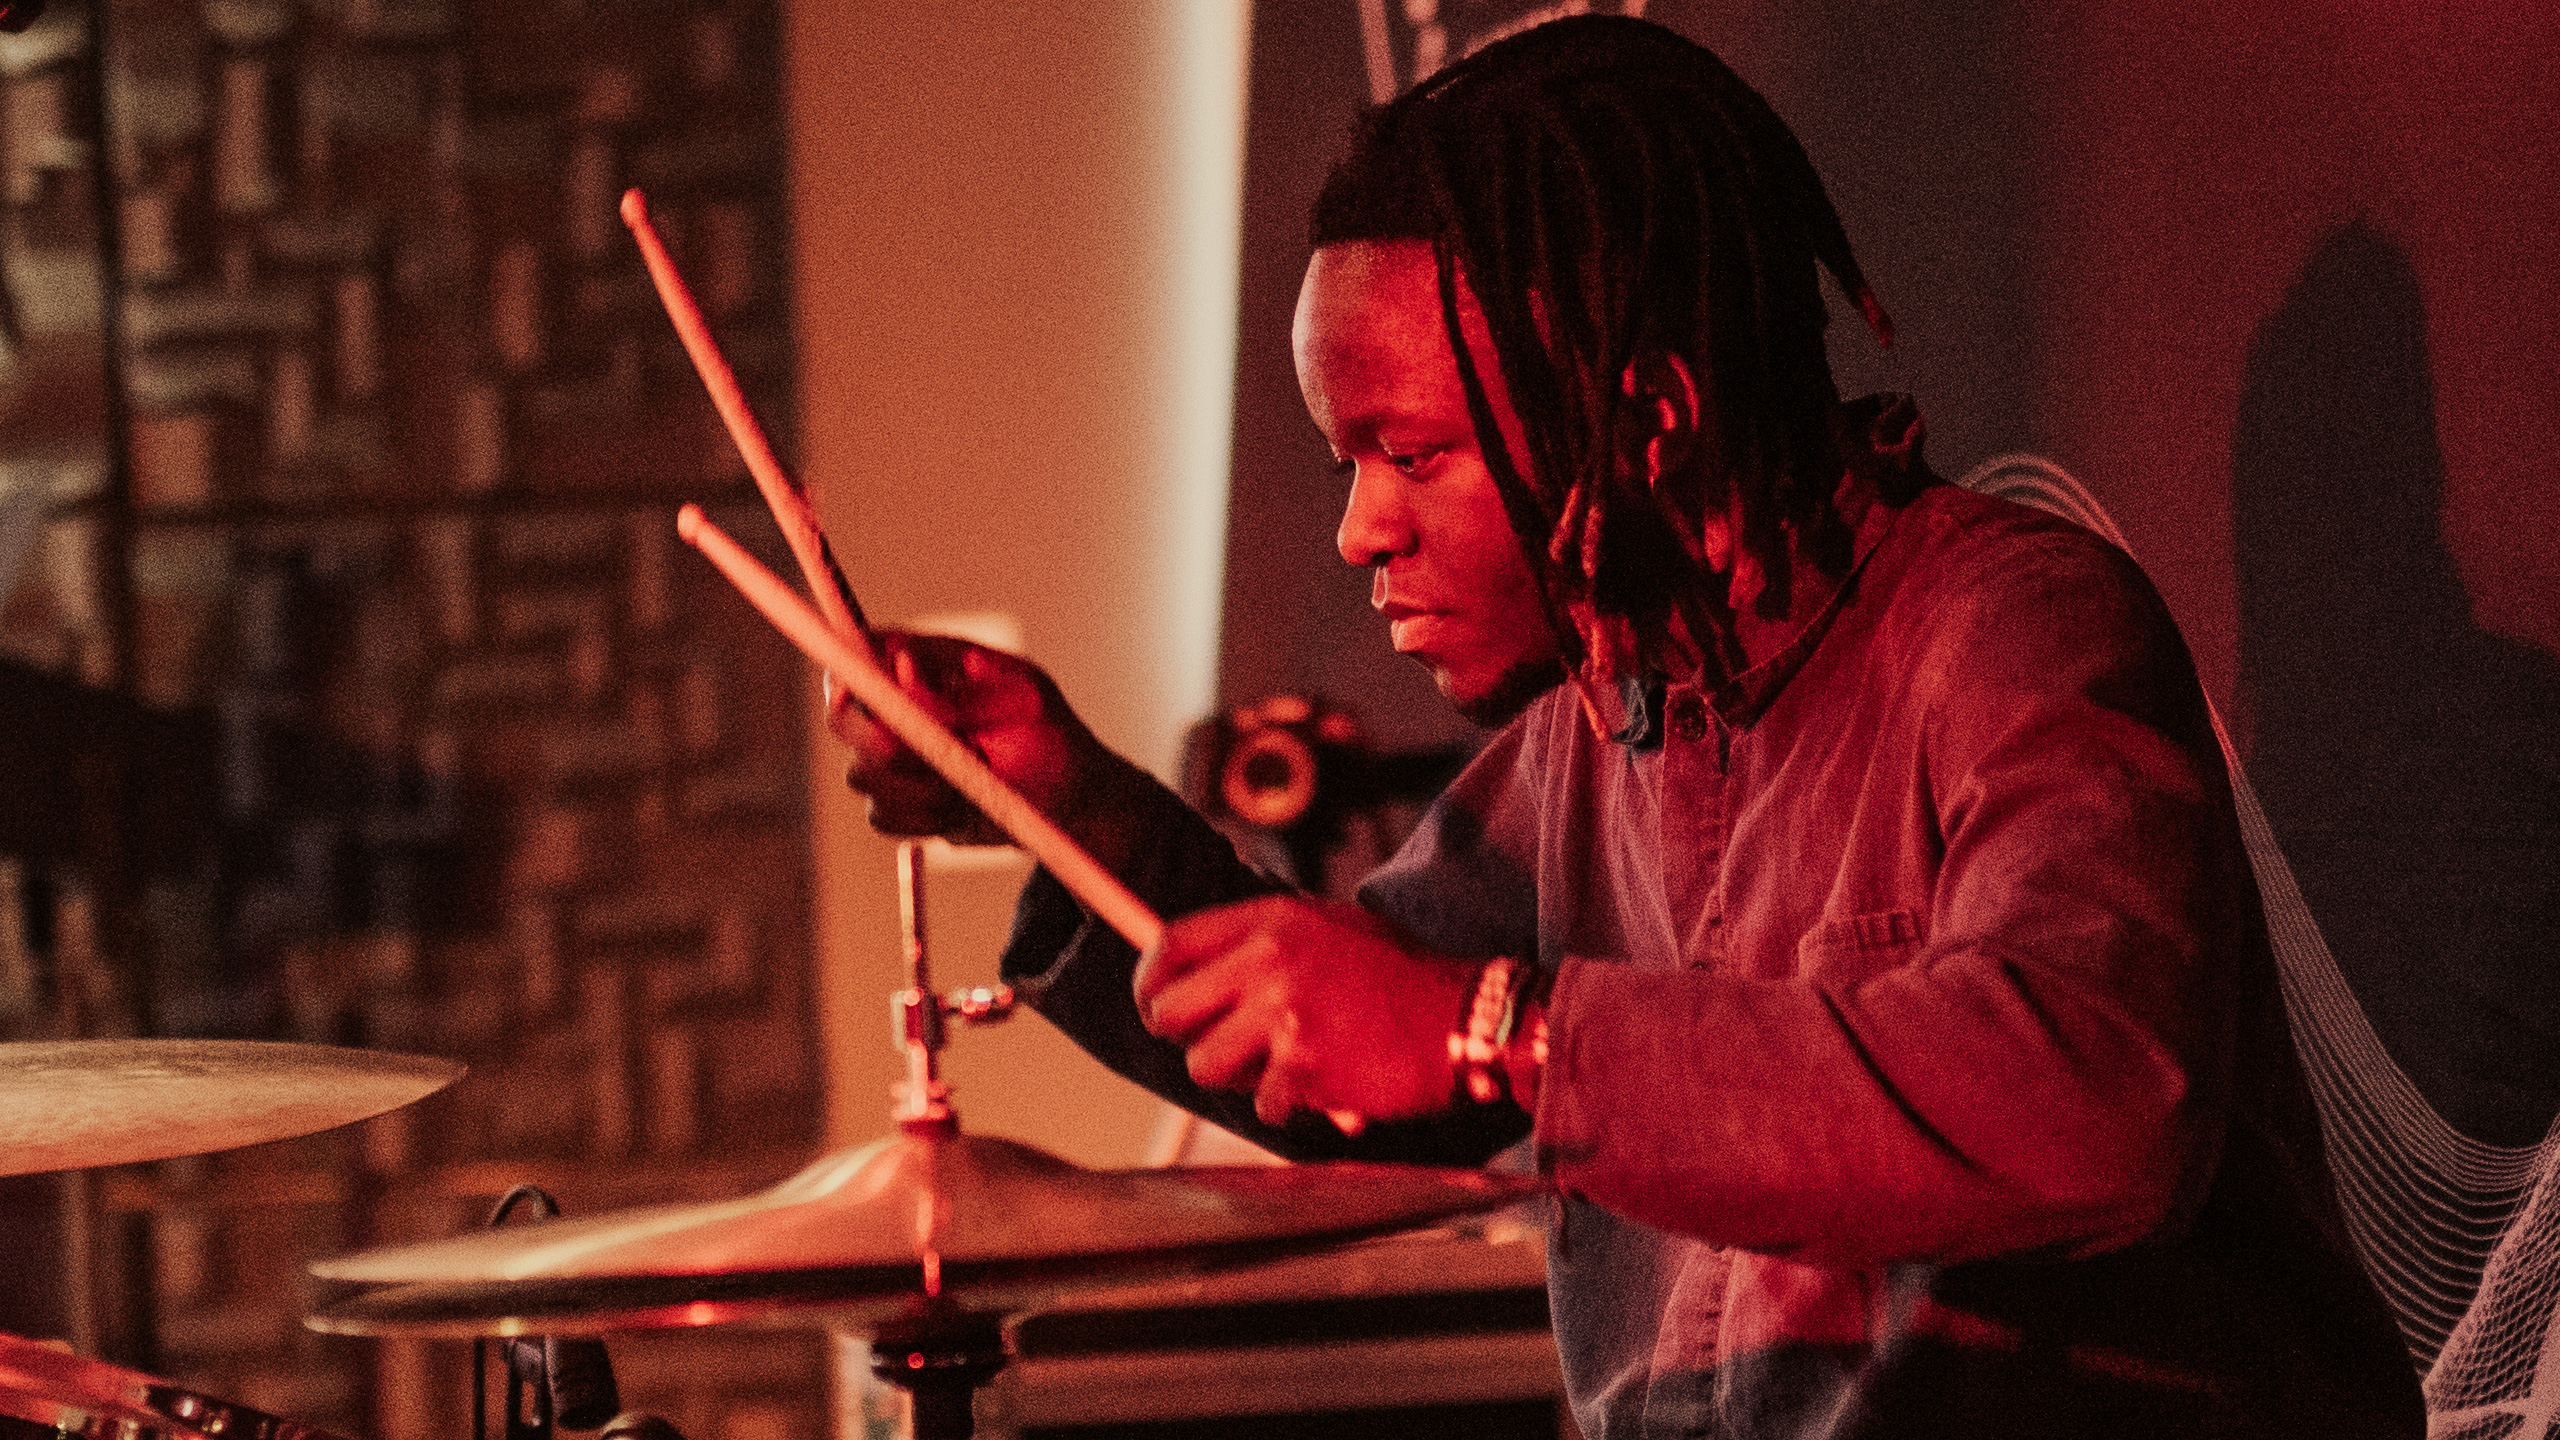 Black Midi drummer Morgan Simpson